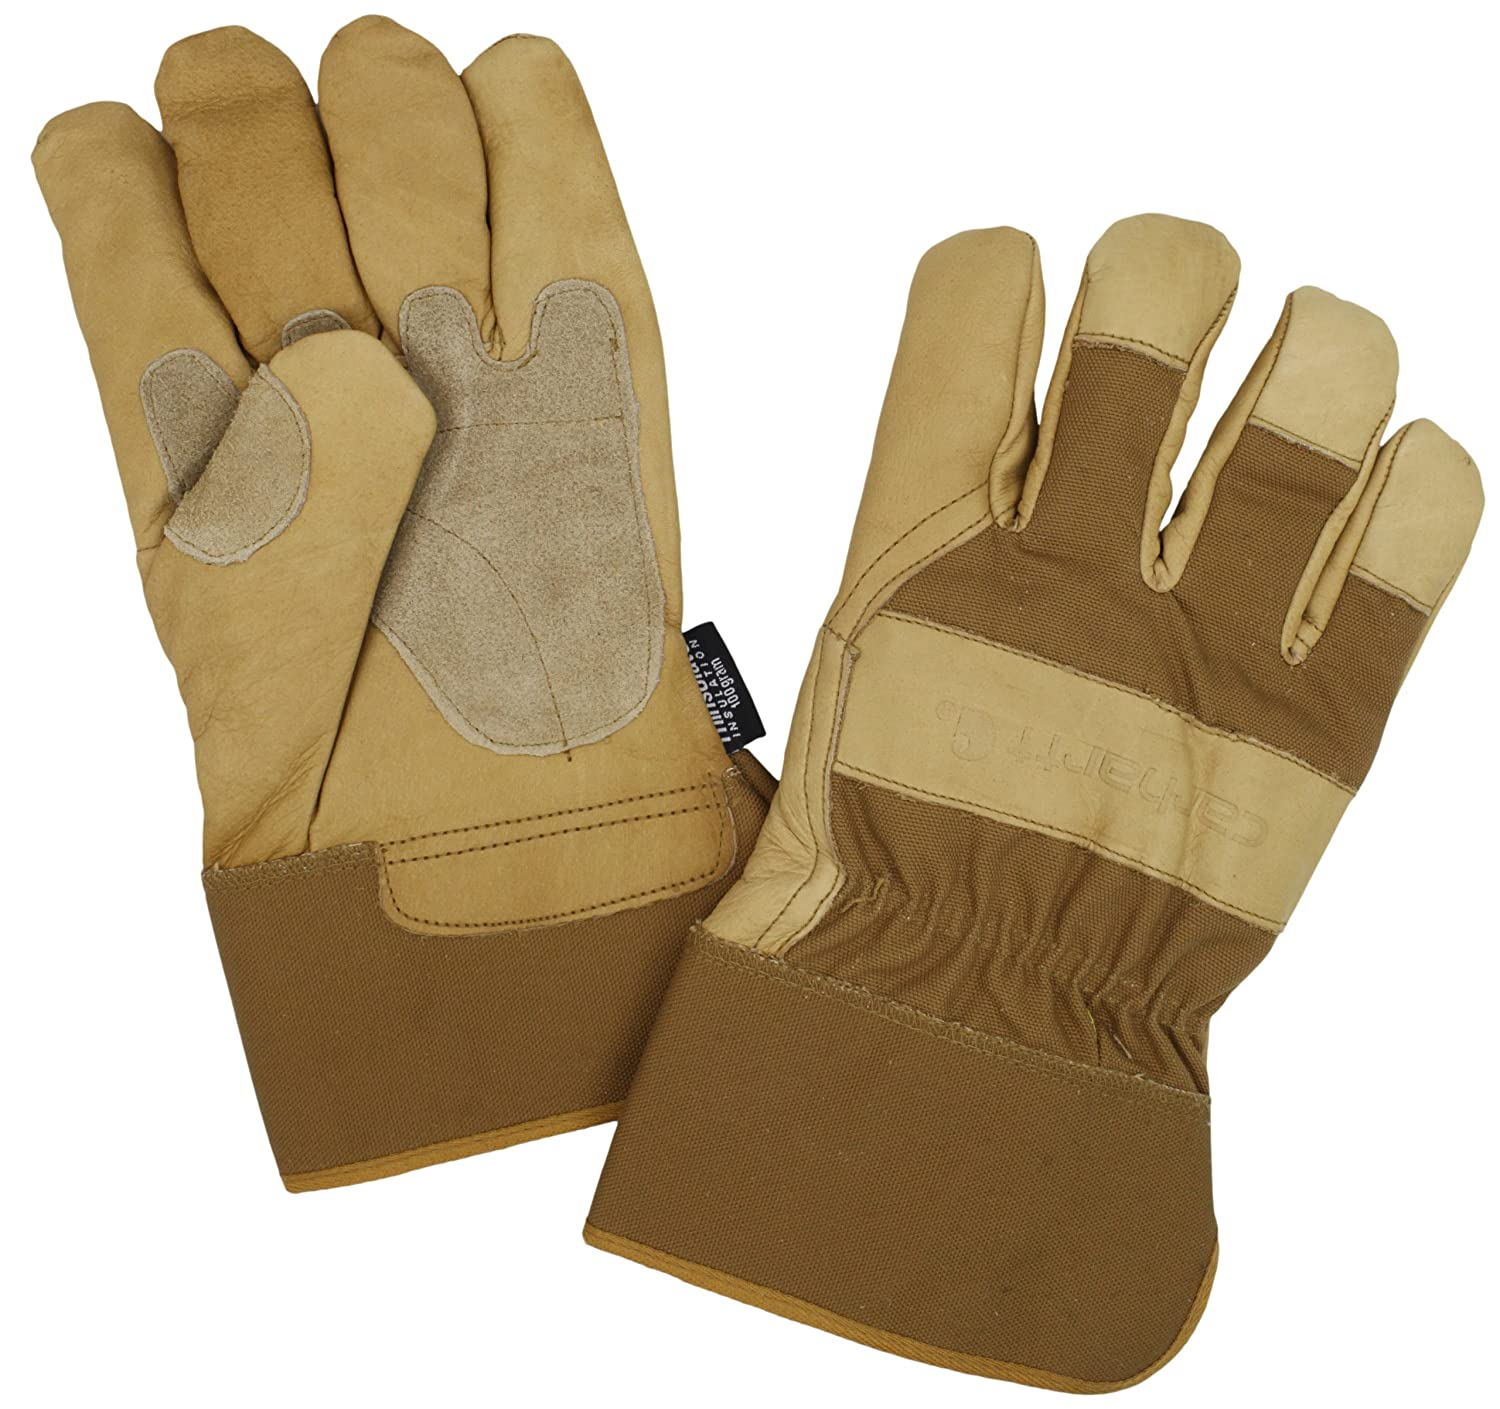 Insulated leather work gloves amazon - Amazon Com Carhartt Men S Insulated Grain Leather Work Glove With Safety Cuff Brown Small Clothing